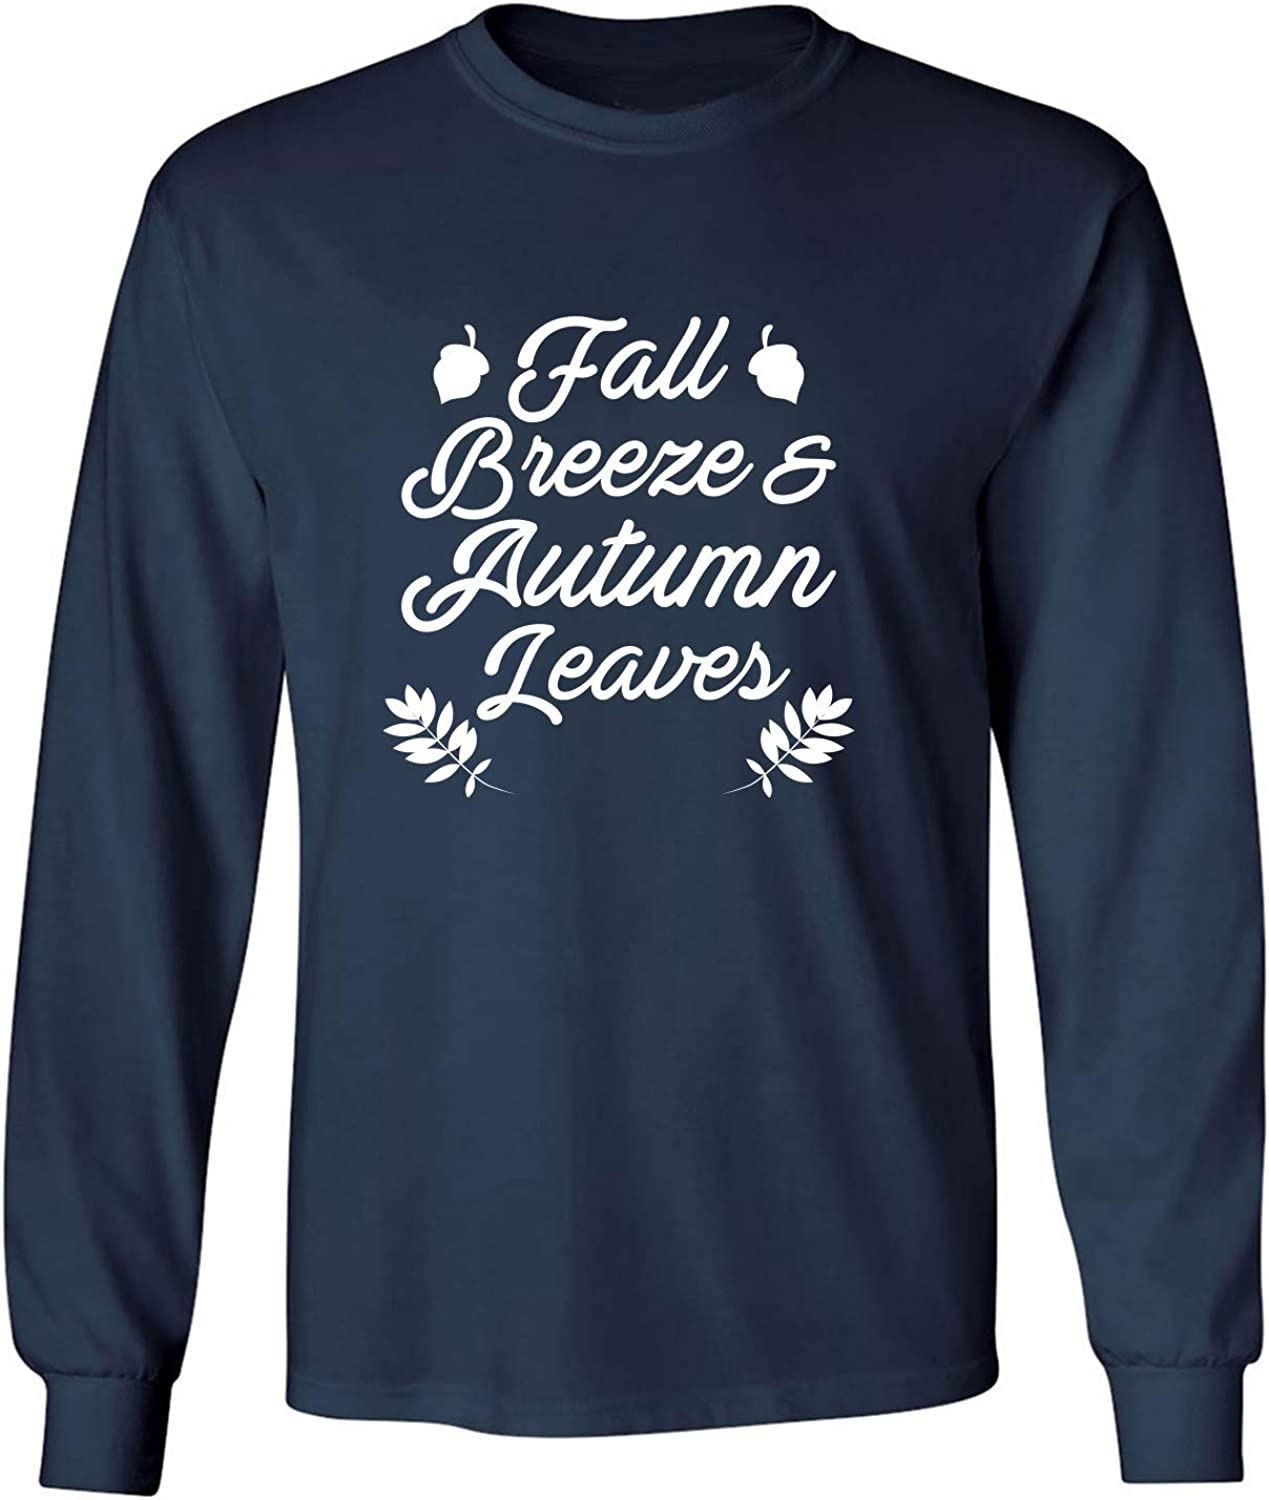 Fall Breeze & Autumn Leaves Adult Long Sleeve T-Shirt in Navy - XXX-Large